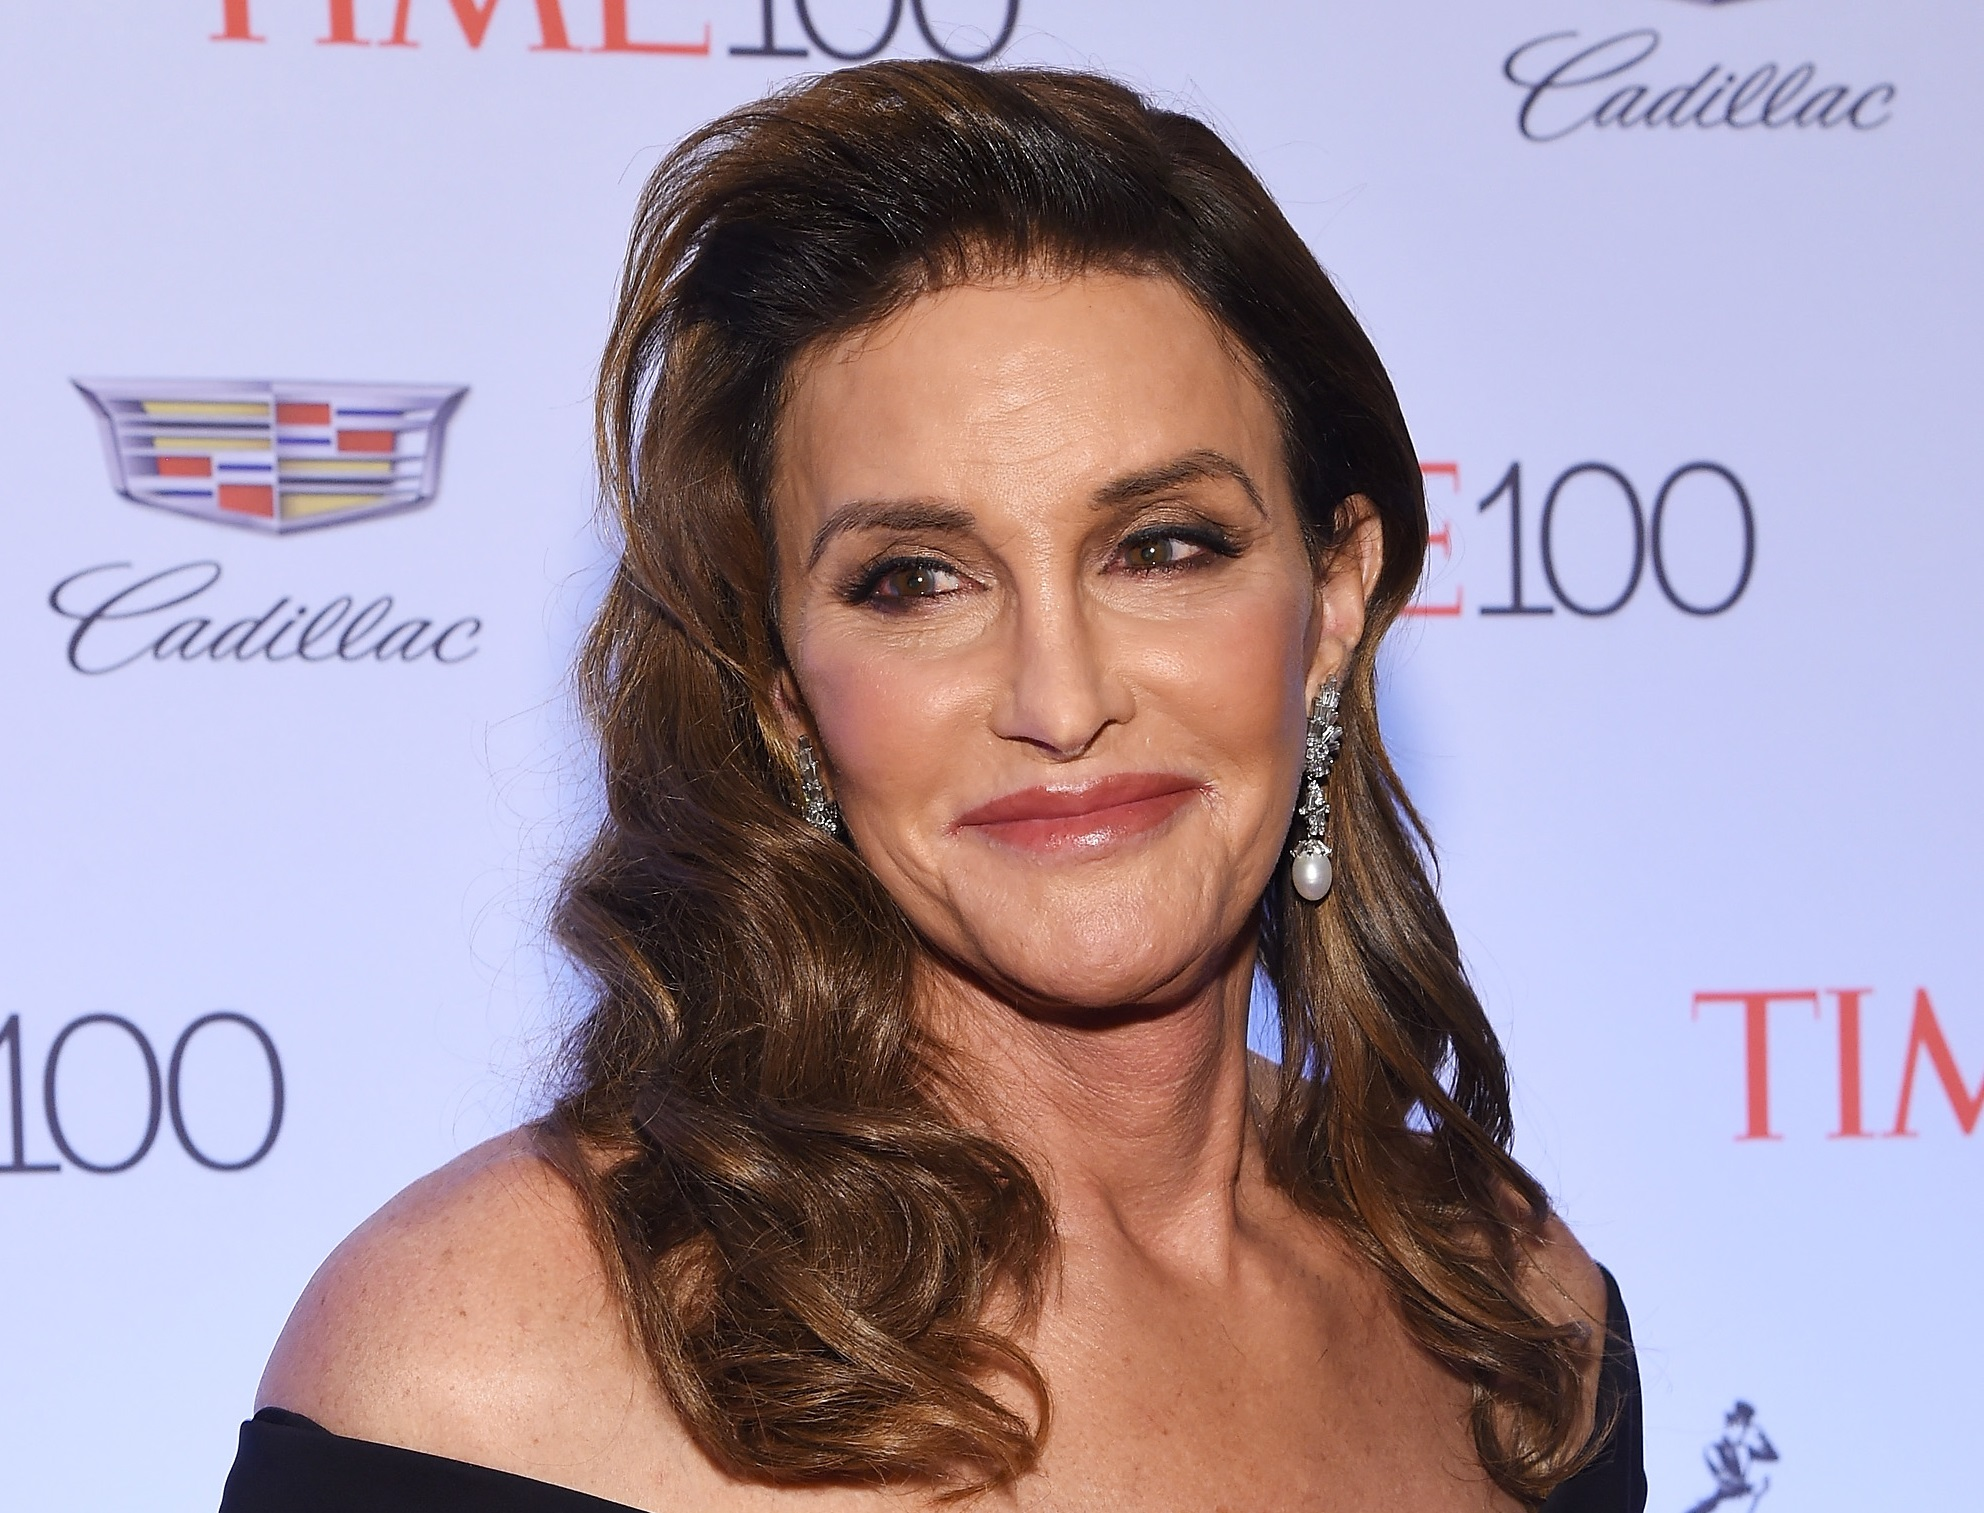 Caitlyn Jenner Regrets Transitioning To A Woman, Wants To ...